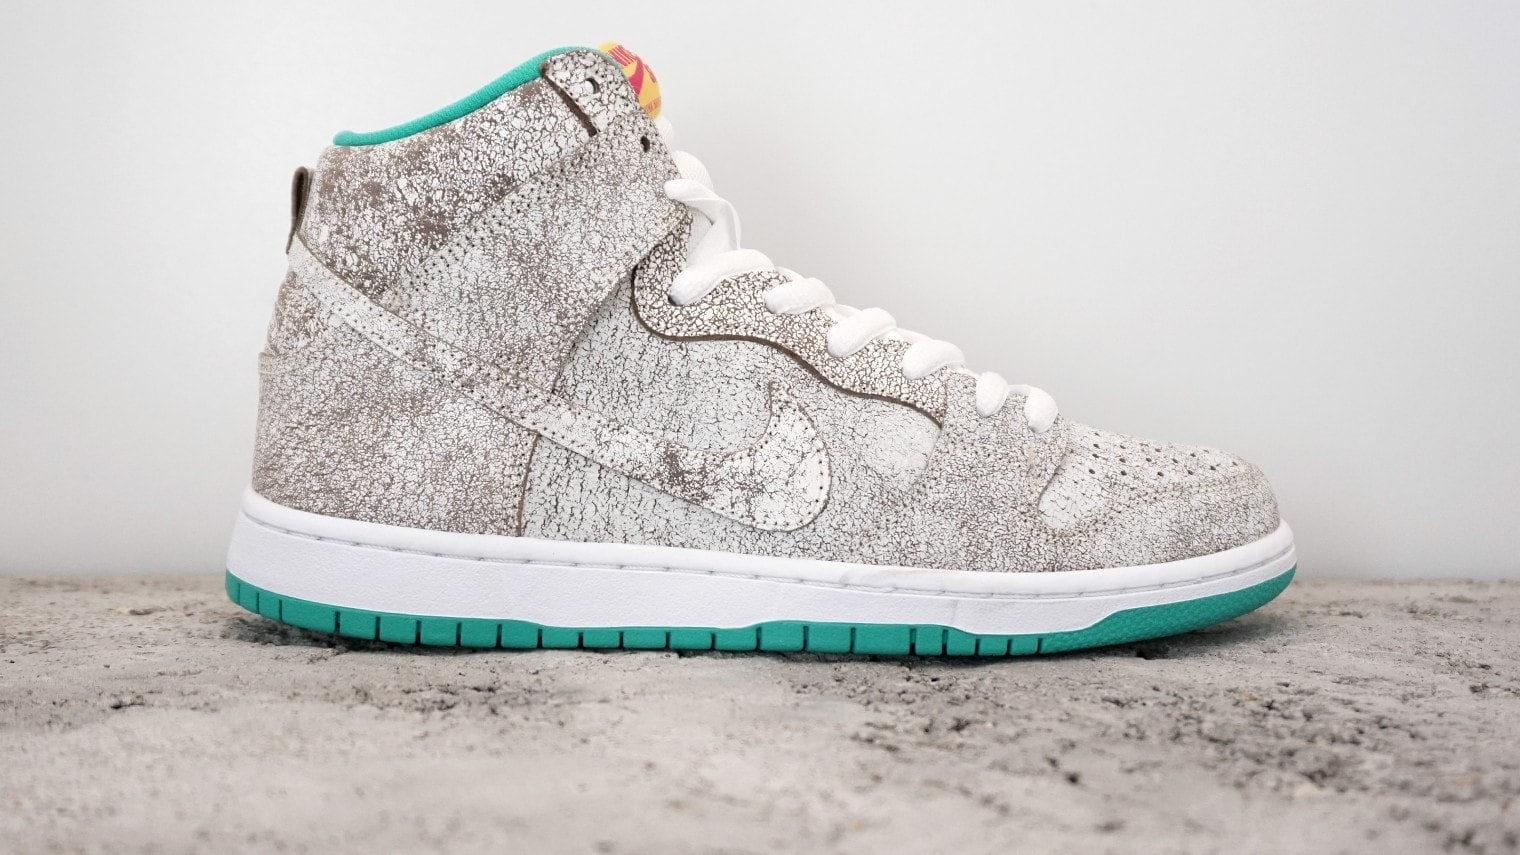 best website 776da 81e24 ... czech sb dunk high prm flamingo restock via nike justfreshkicks 52051  d0880